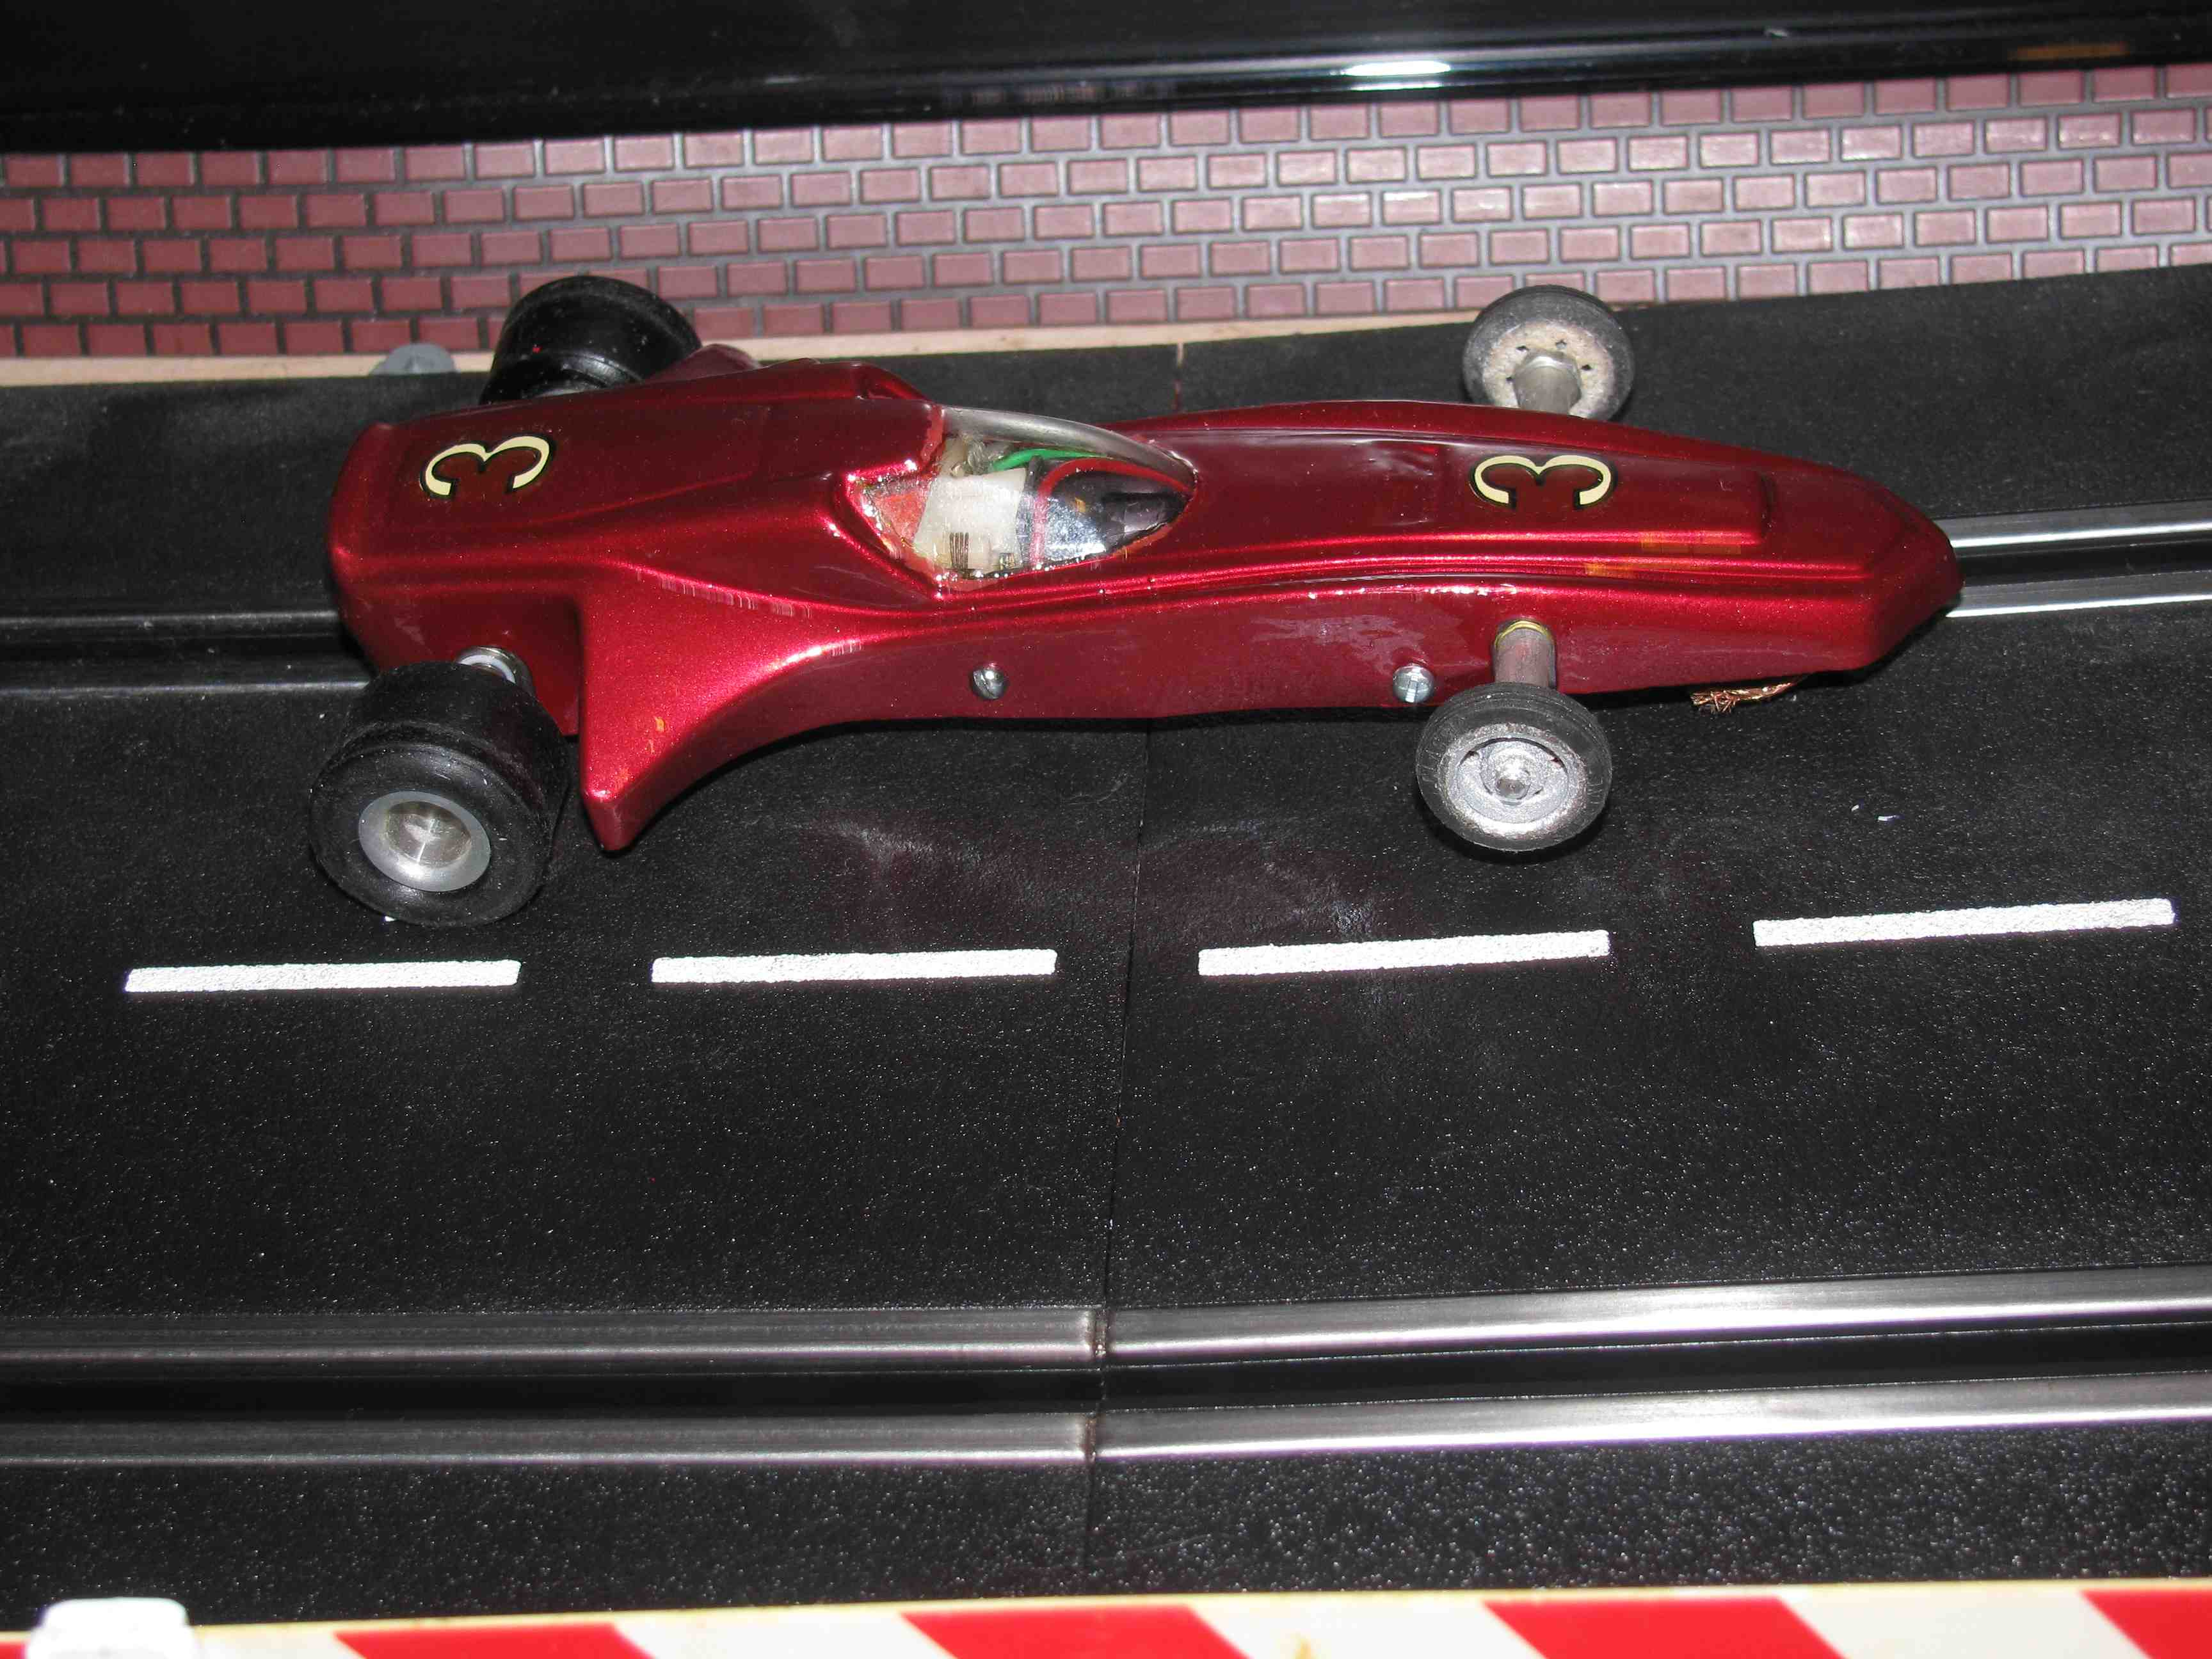 * SOLD * ssic Industry ASP Radical Red Racer 1/32 Scale Slot Car